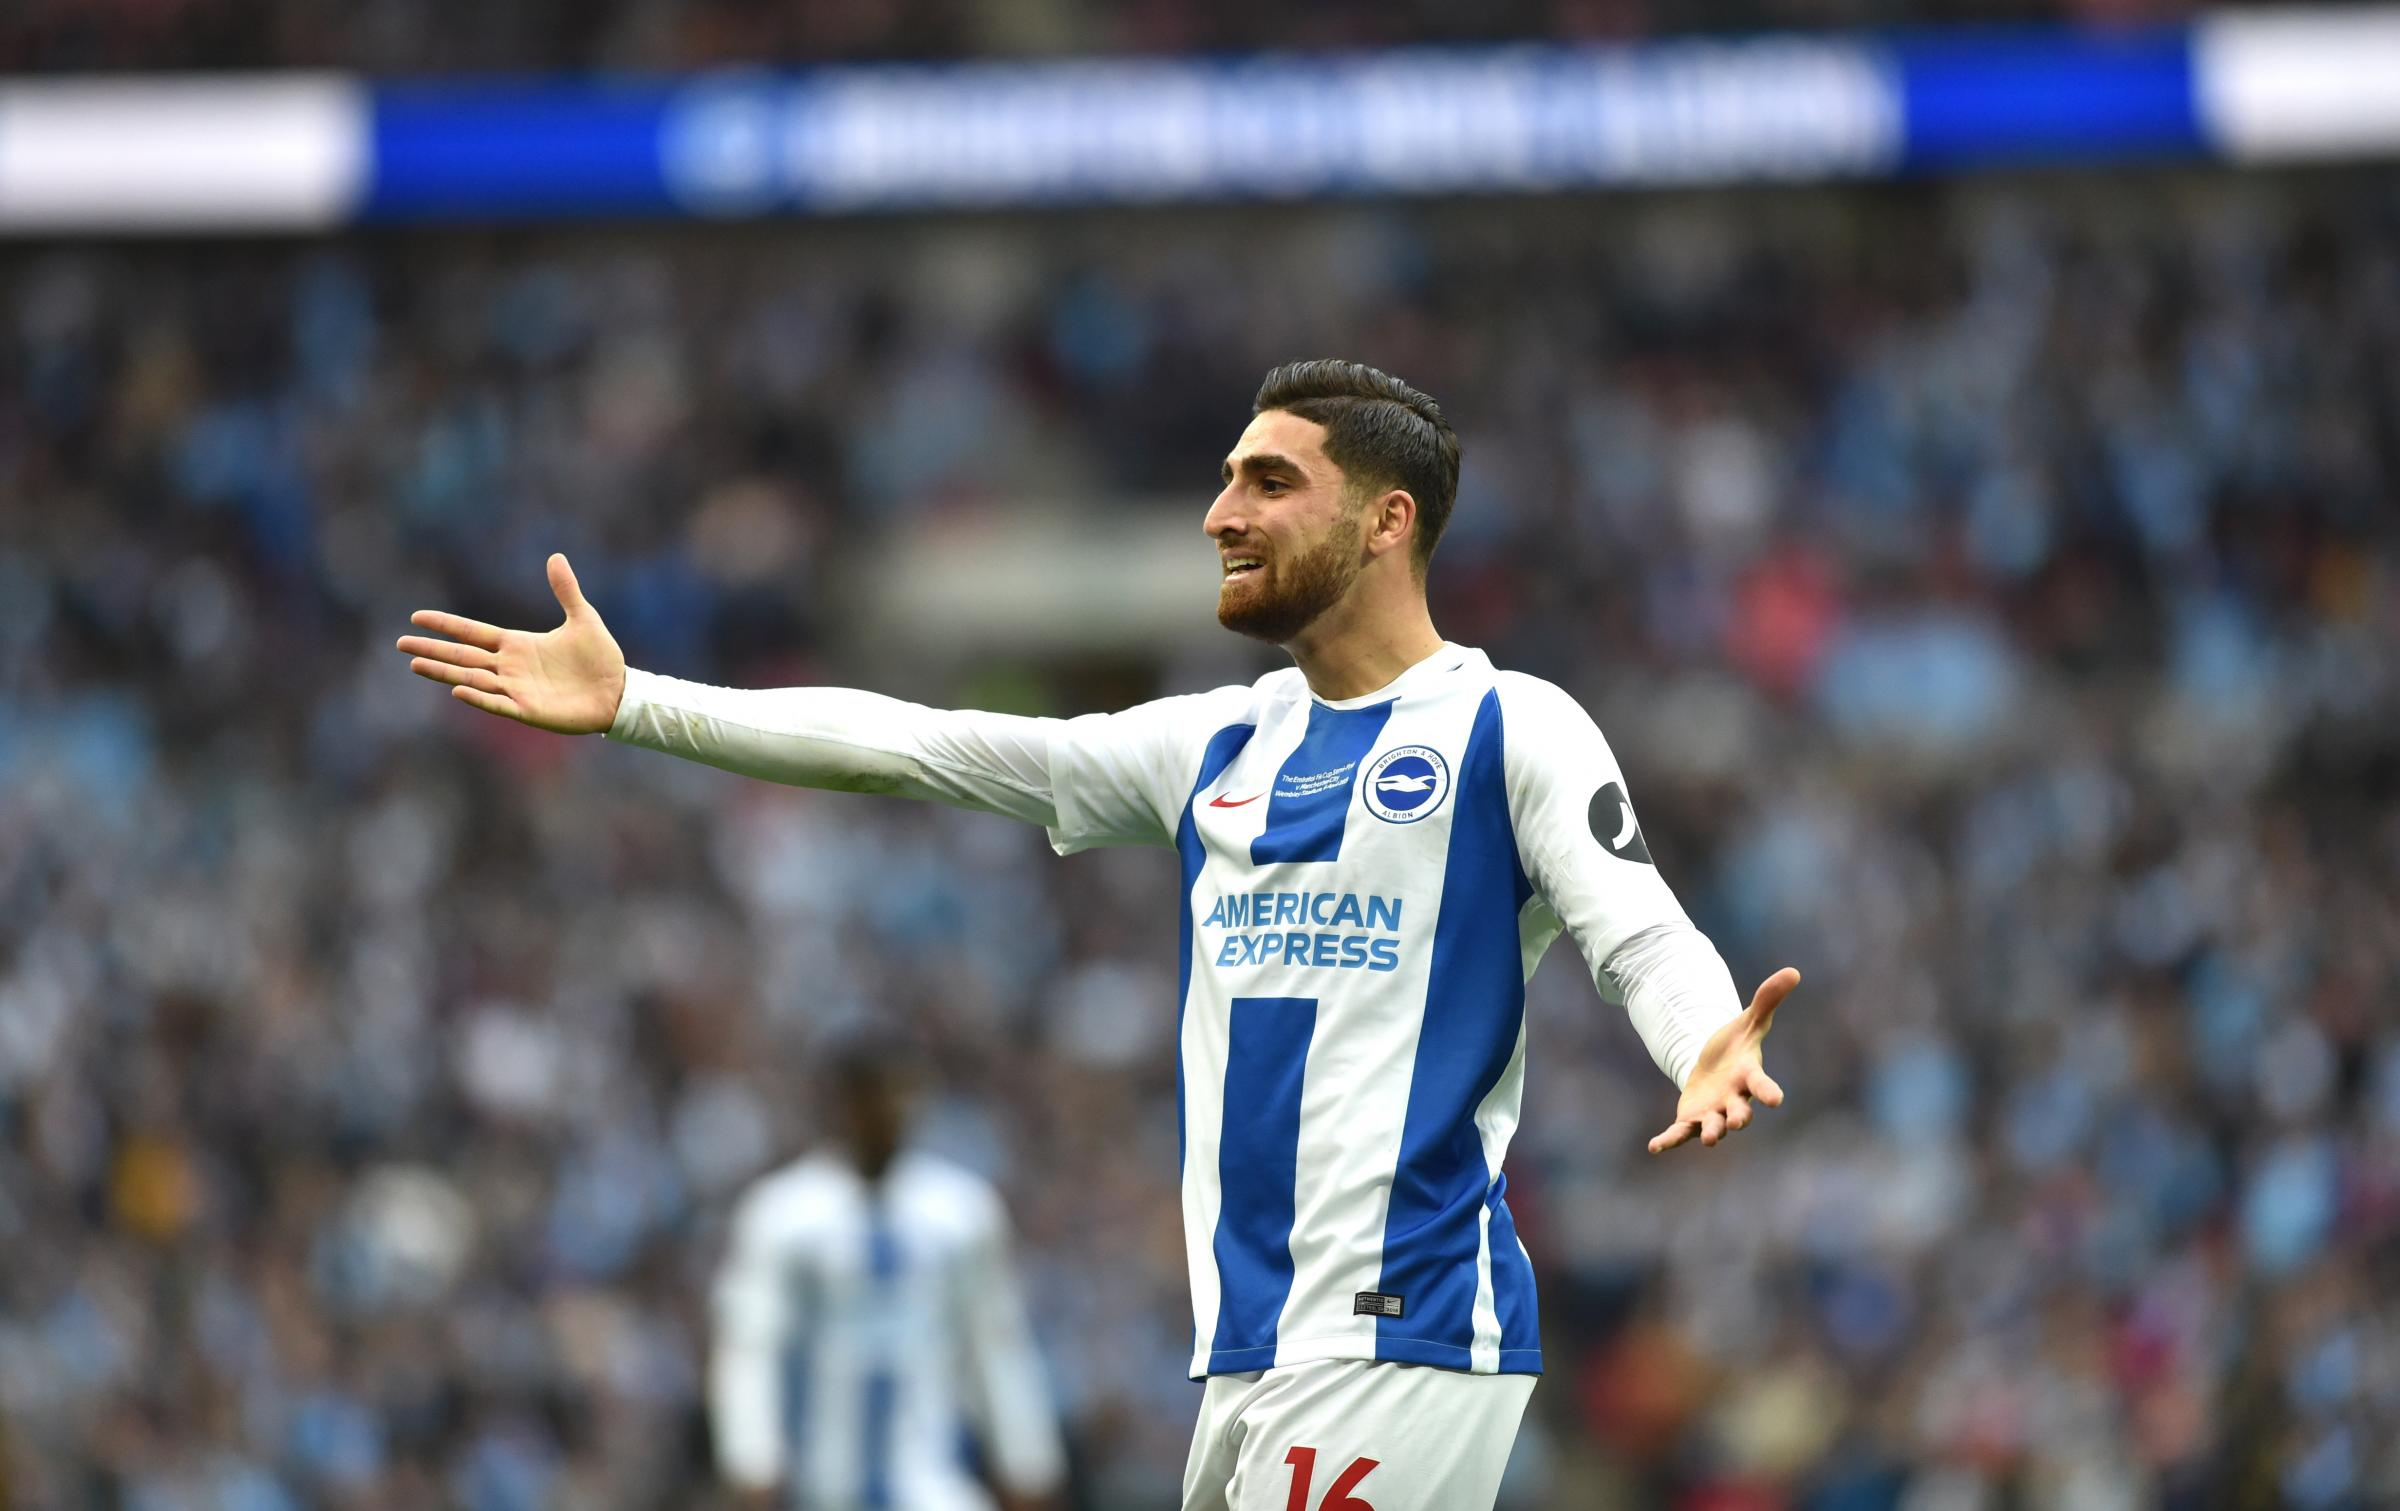 Record signing Alireza Jahanbakhsh has struggled to make an impact since his summer move